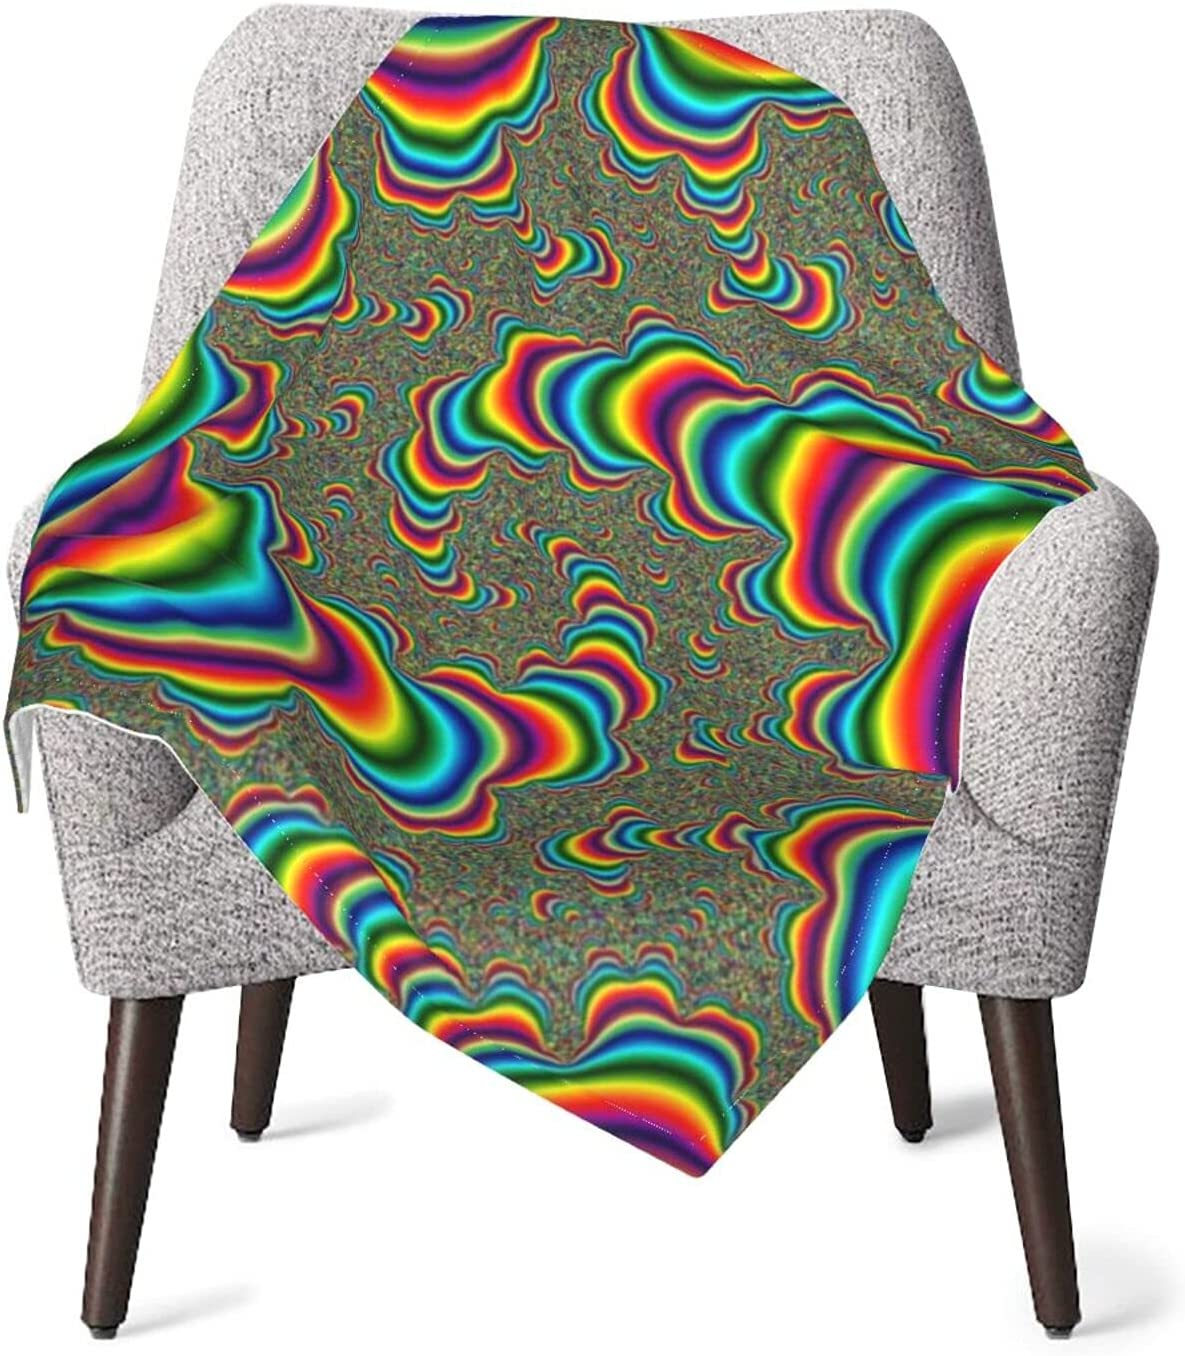 JZDACH Baby Essentials Throw latest and Receiving Psychedelic Ra Max 77% OFF Trippy